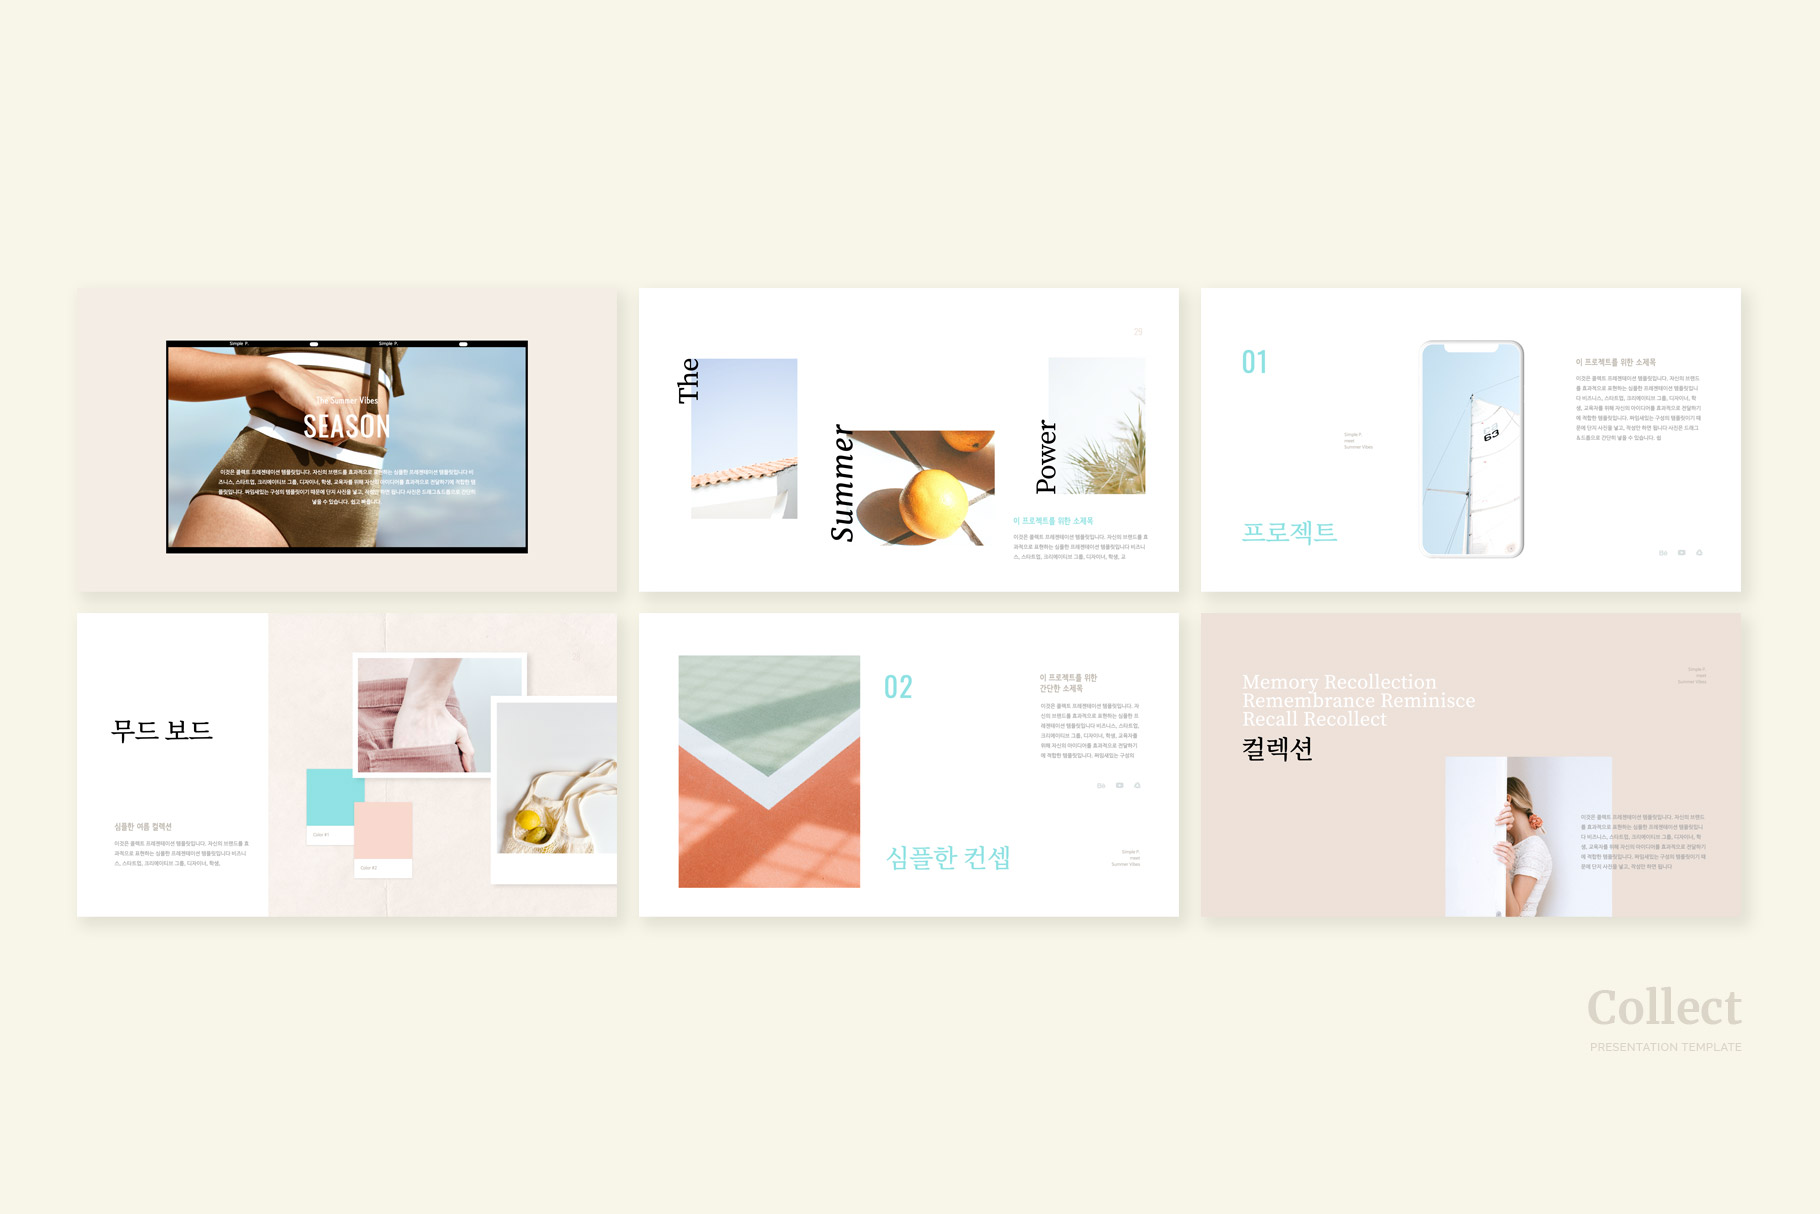 Collect Presentation Template